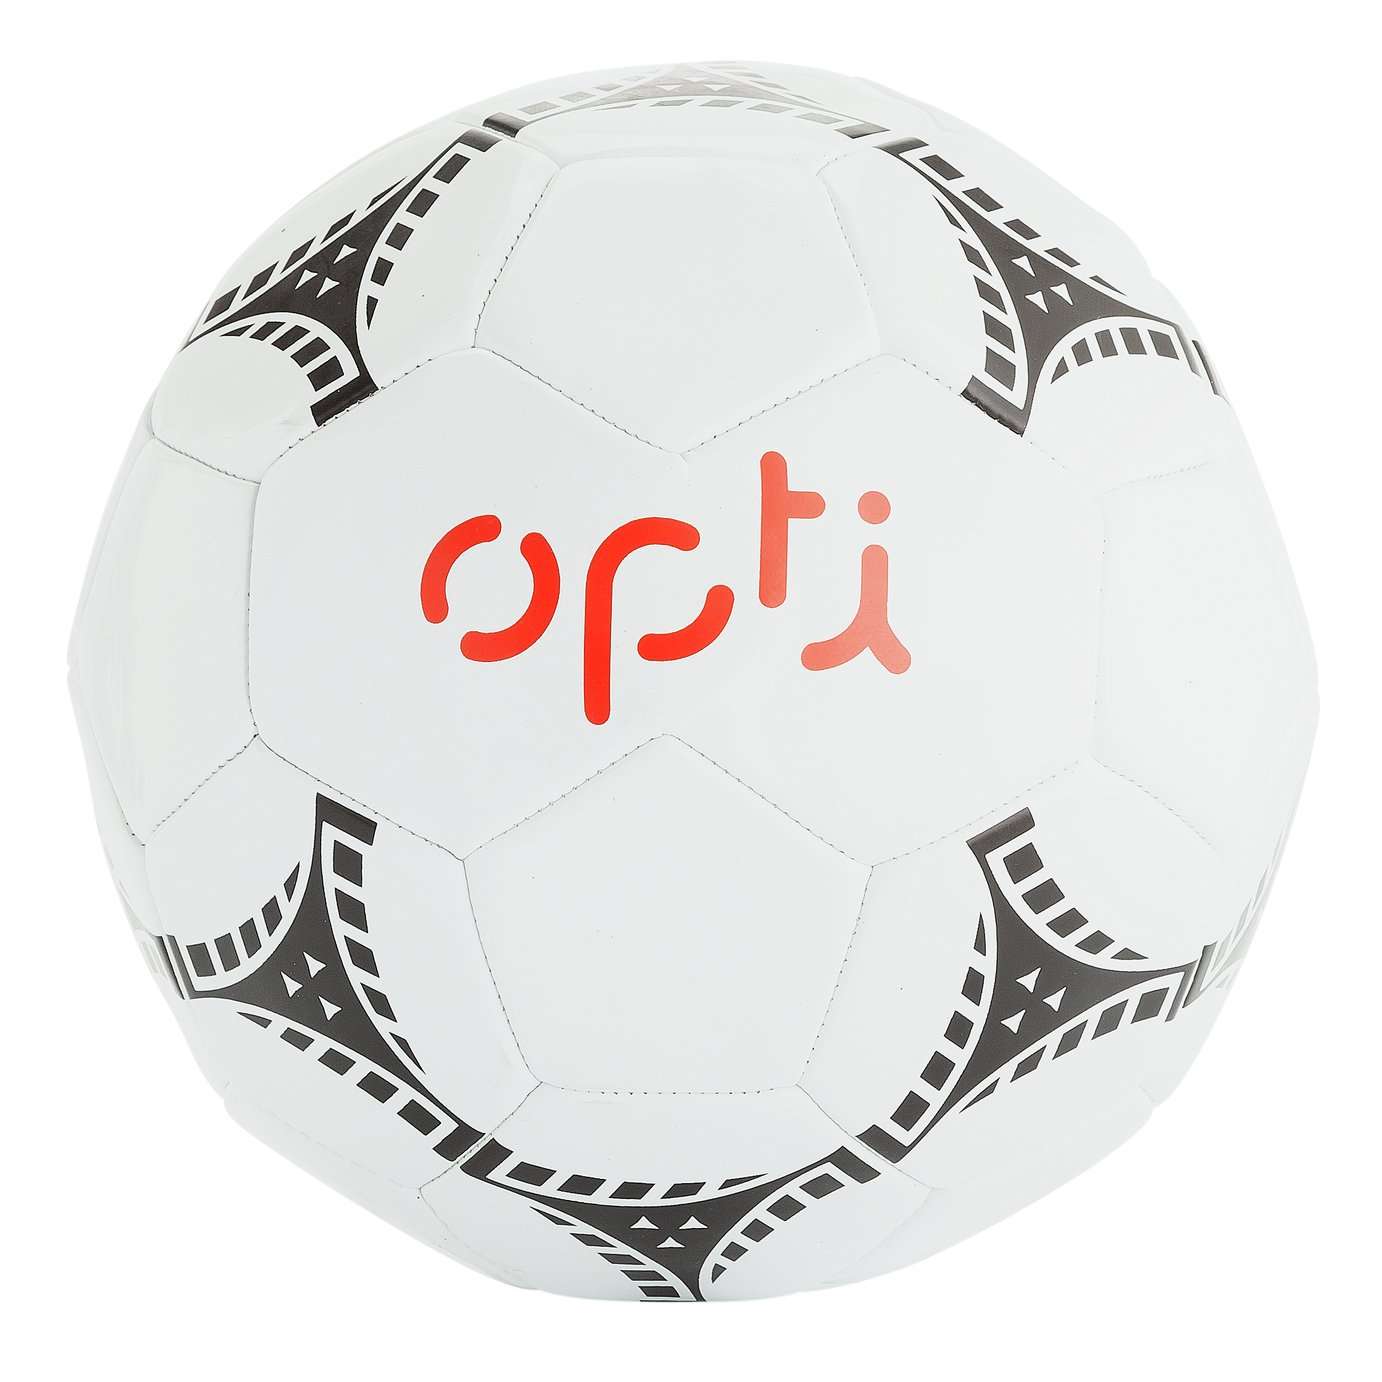 Opti Size 5 Football - White